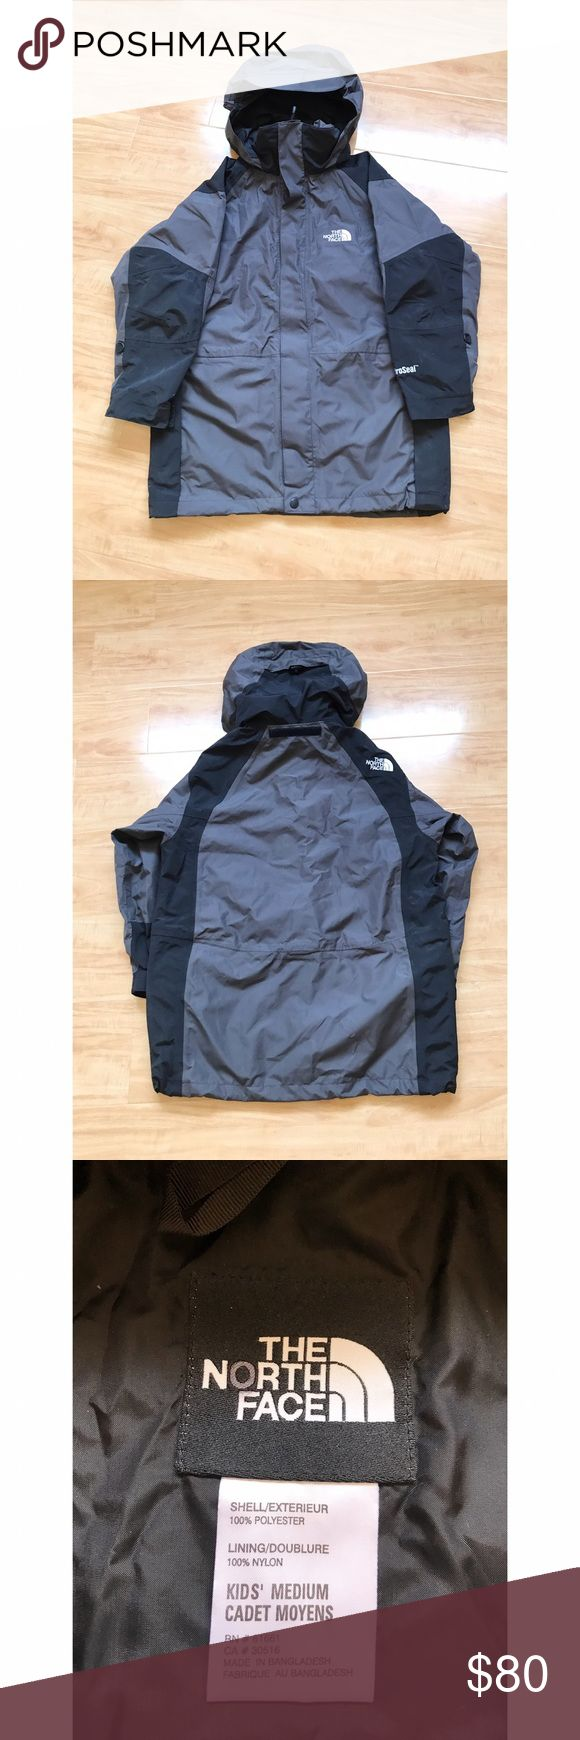 The North Face Grey Rain/Snow Jacket Kid's Medium. Please ask me further questions in the comments, I will be happy to answer! The North Face Jackets & Coats Raincoats